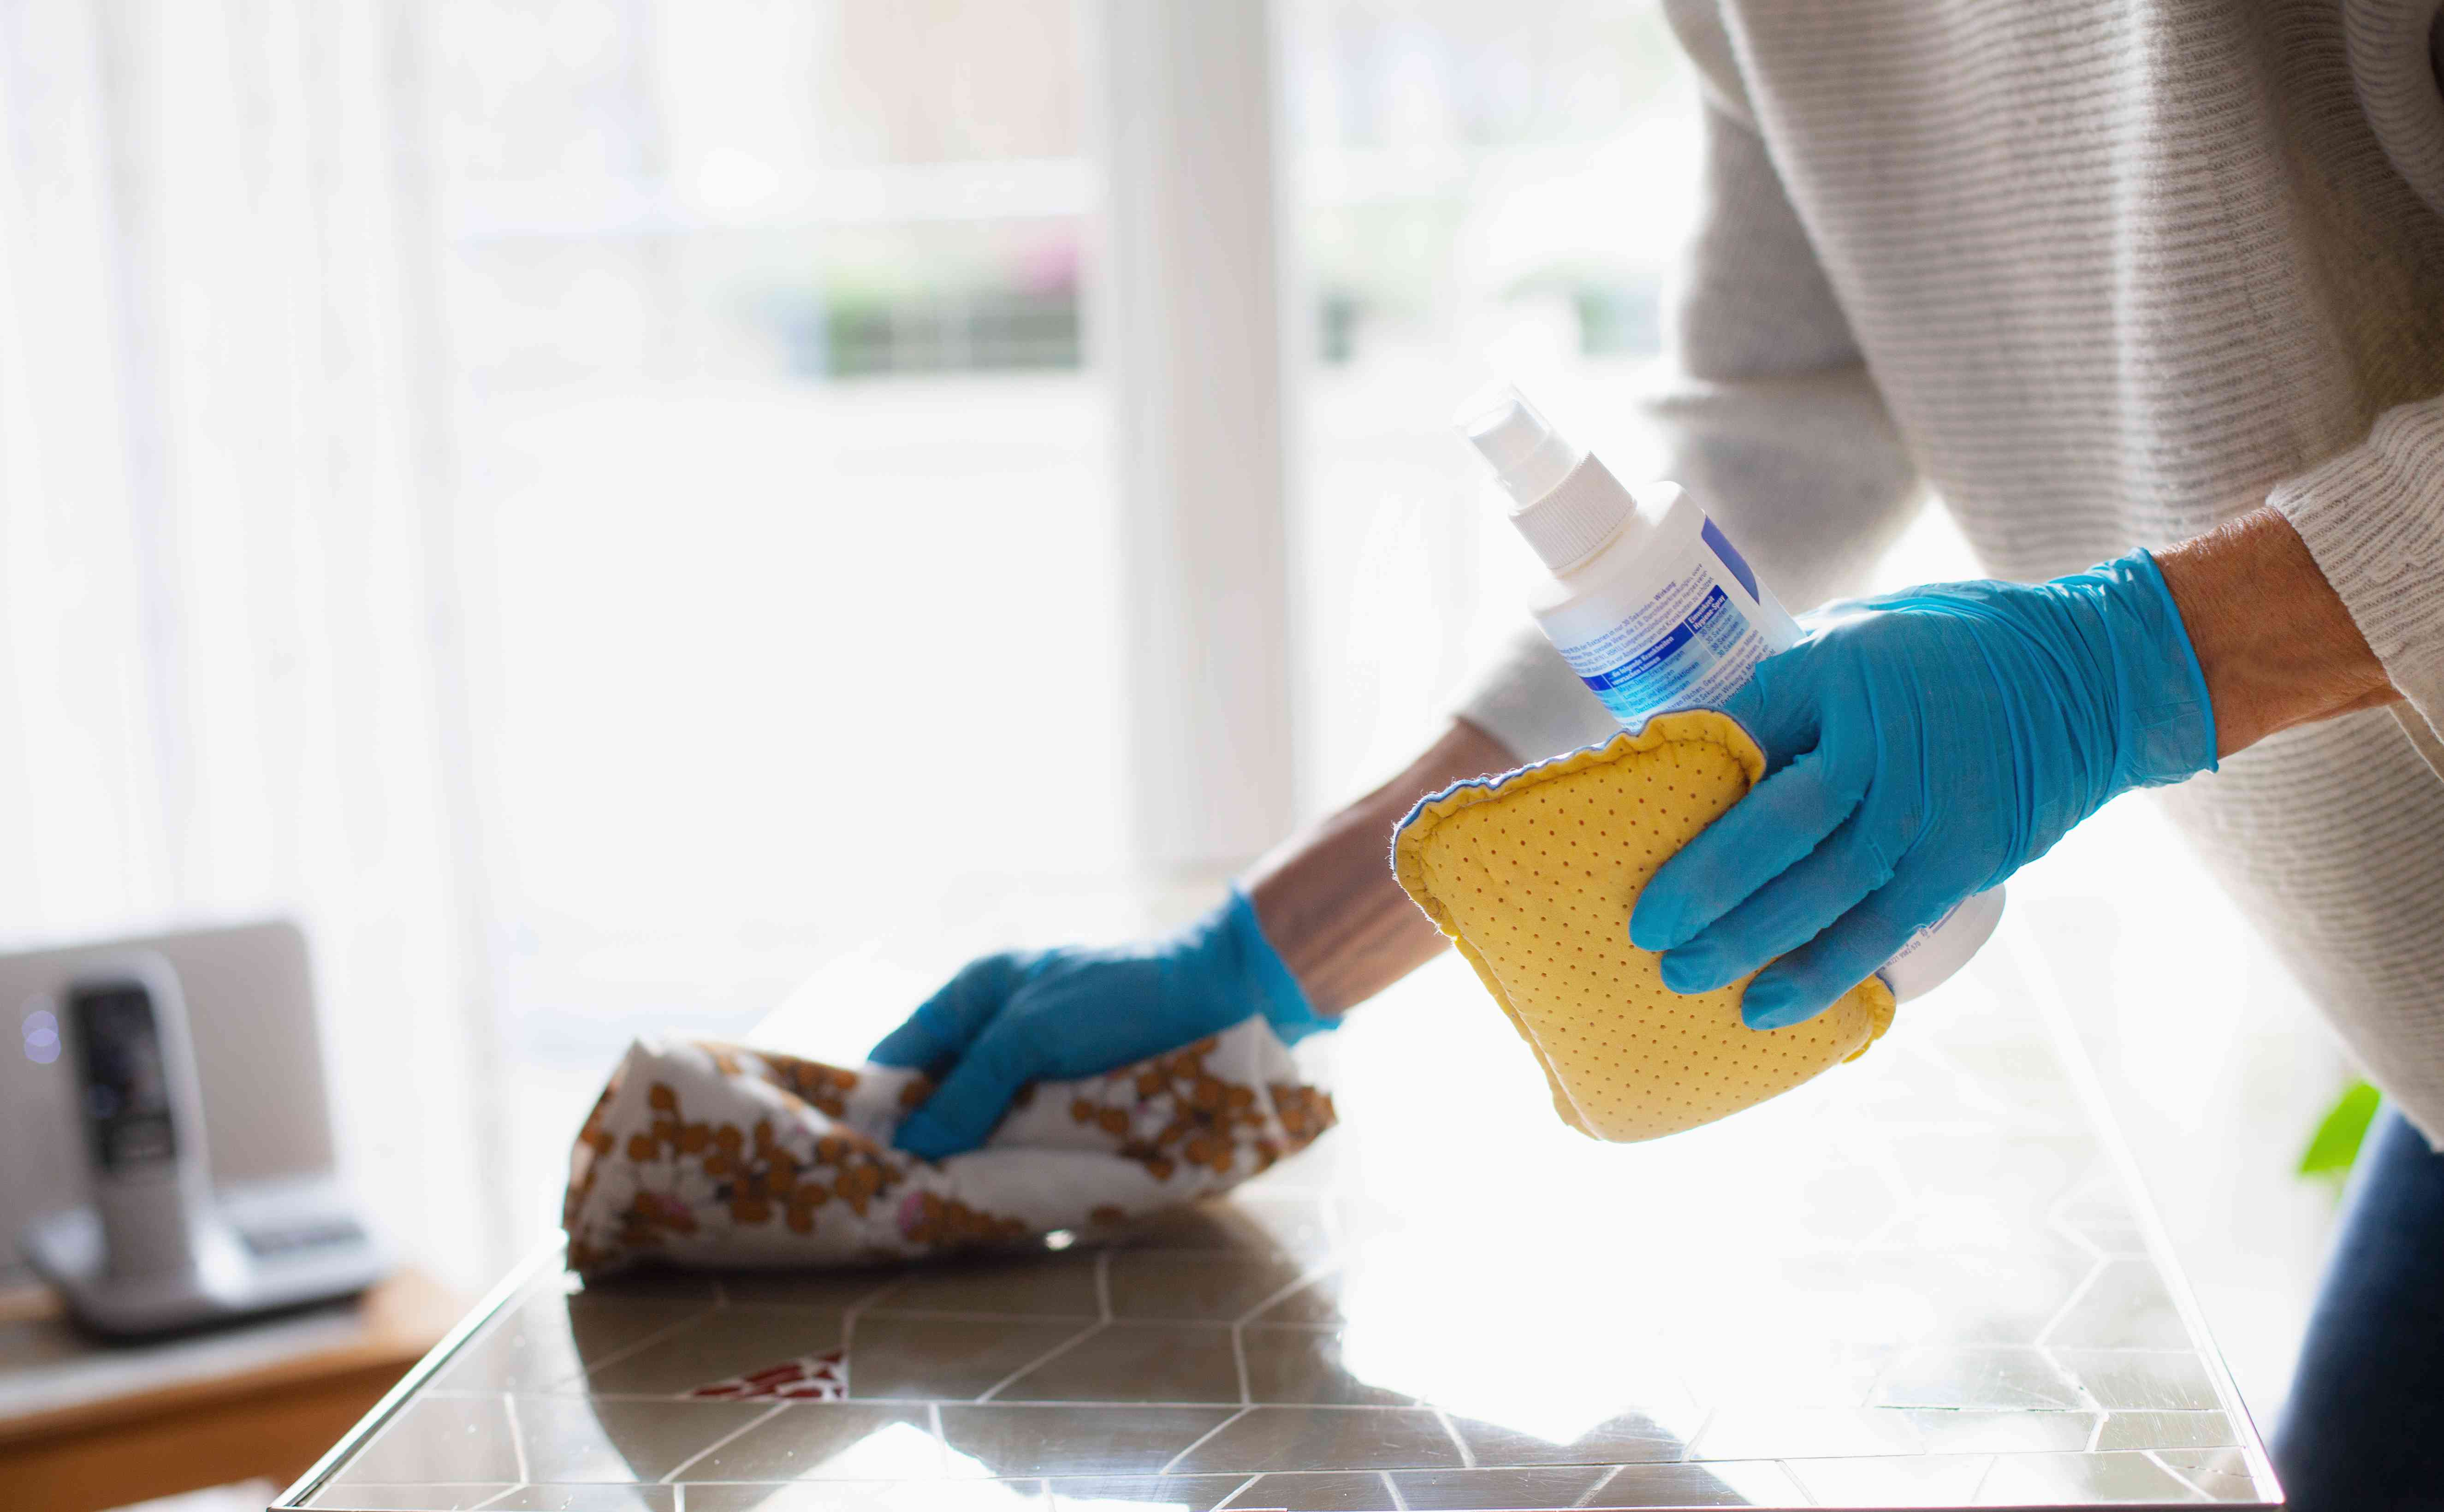 A person wearing rubber gloves and carrying a bottle and sponge wipes a countertop